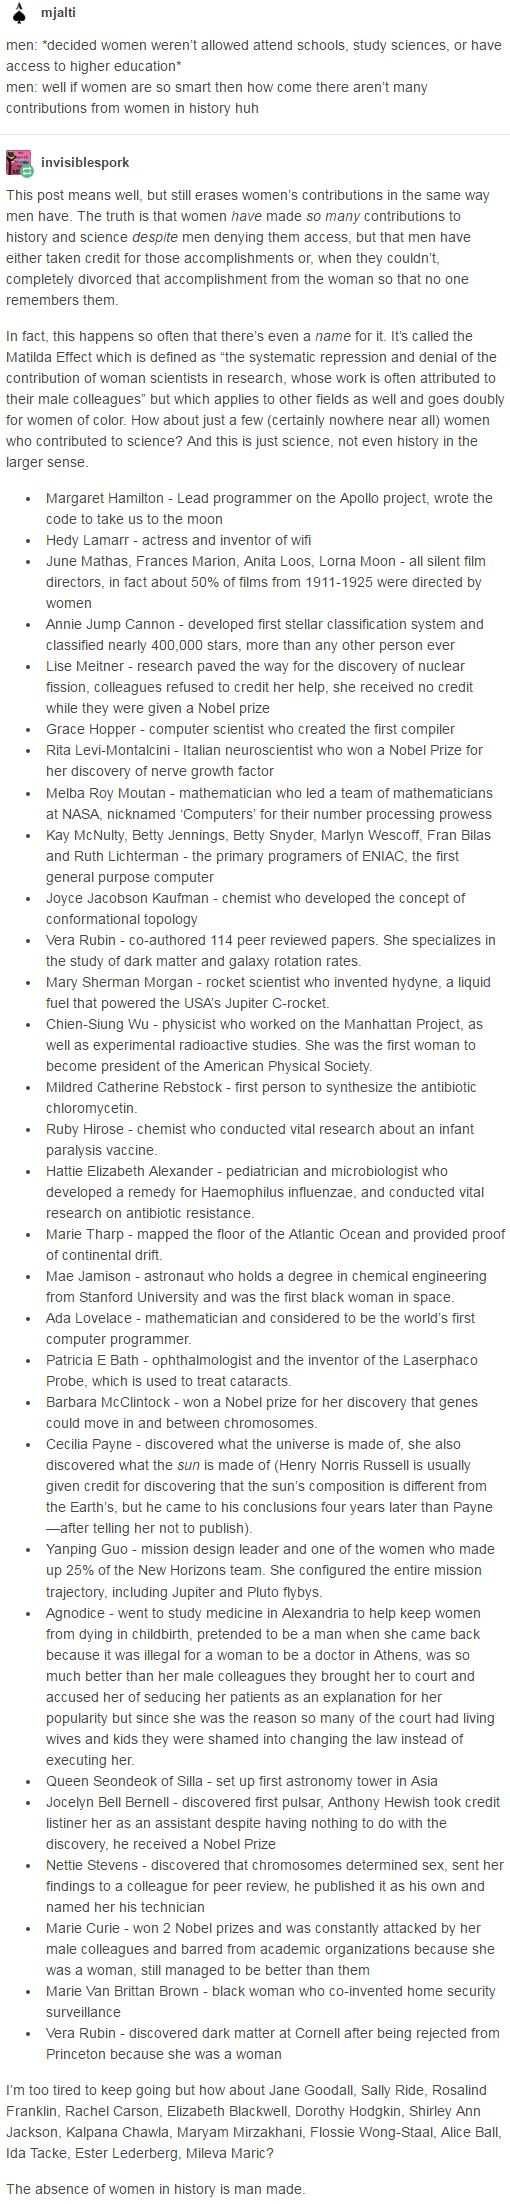 The truth is that women have made so many contributions to history and science despite men denying them access, but that men have either taken credit for those accomplishments or, when they couldn't, completely divorced that accomplishment from the woman so that no one remembers them. http://homosuperior-jumped-the-gun.tumblr.com/post/155383382284/invisiblespork-mjalti-men-decided-women